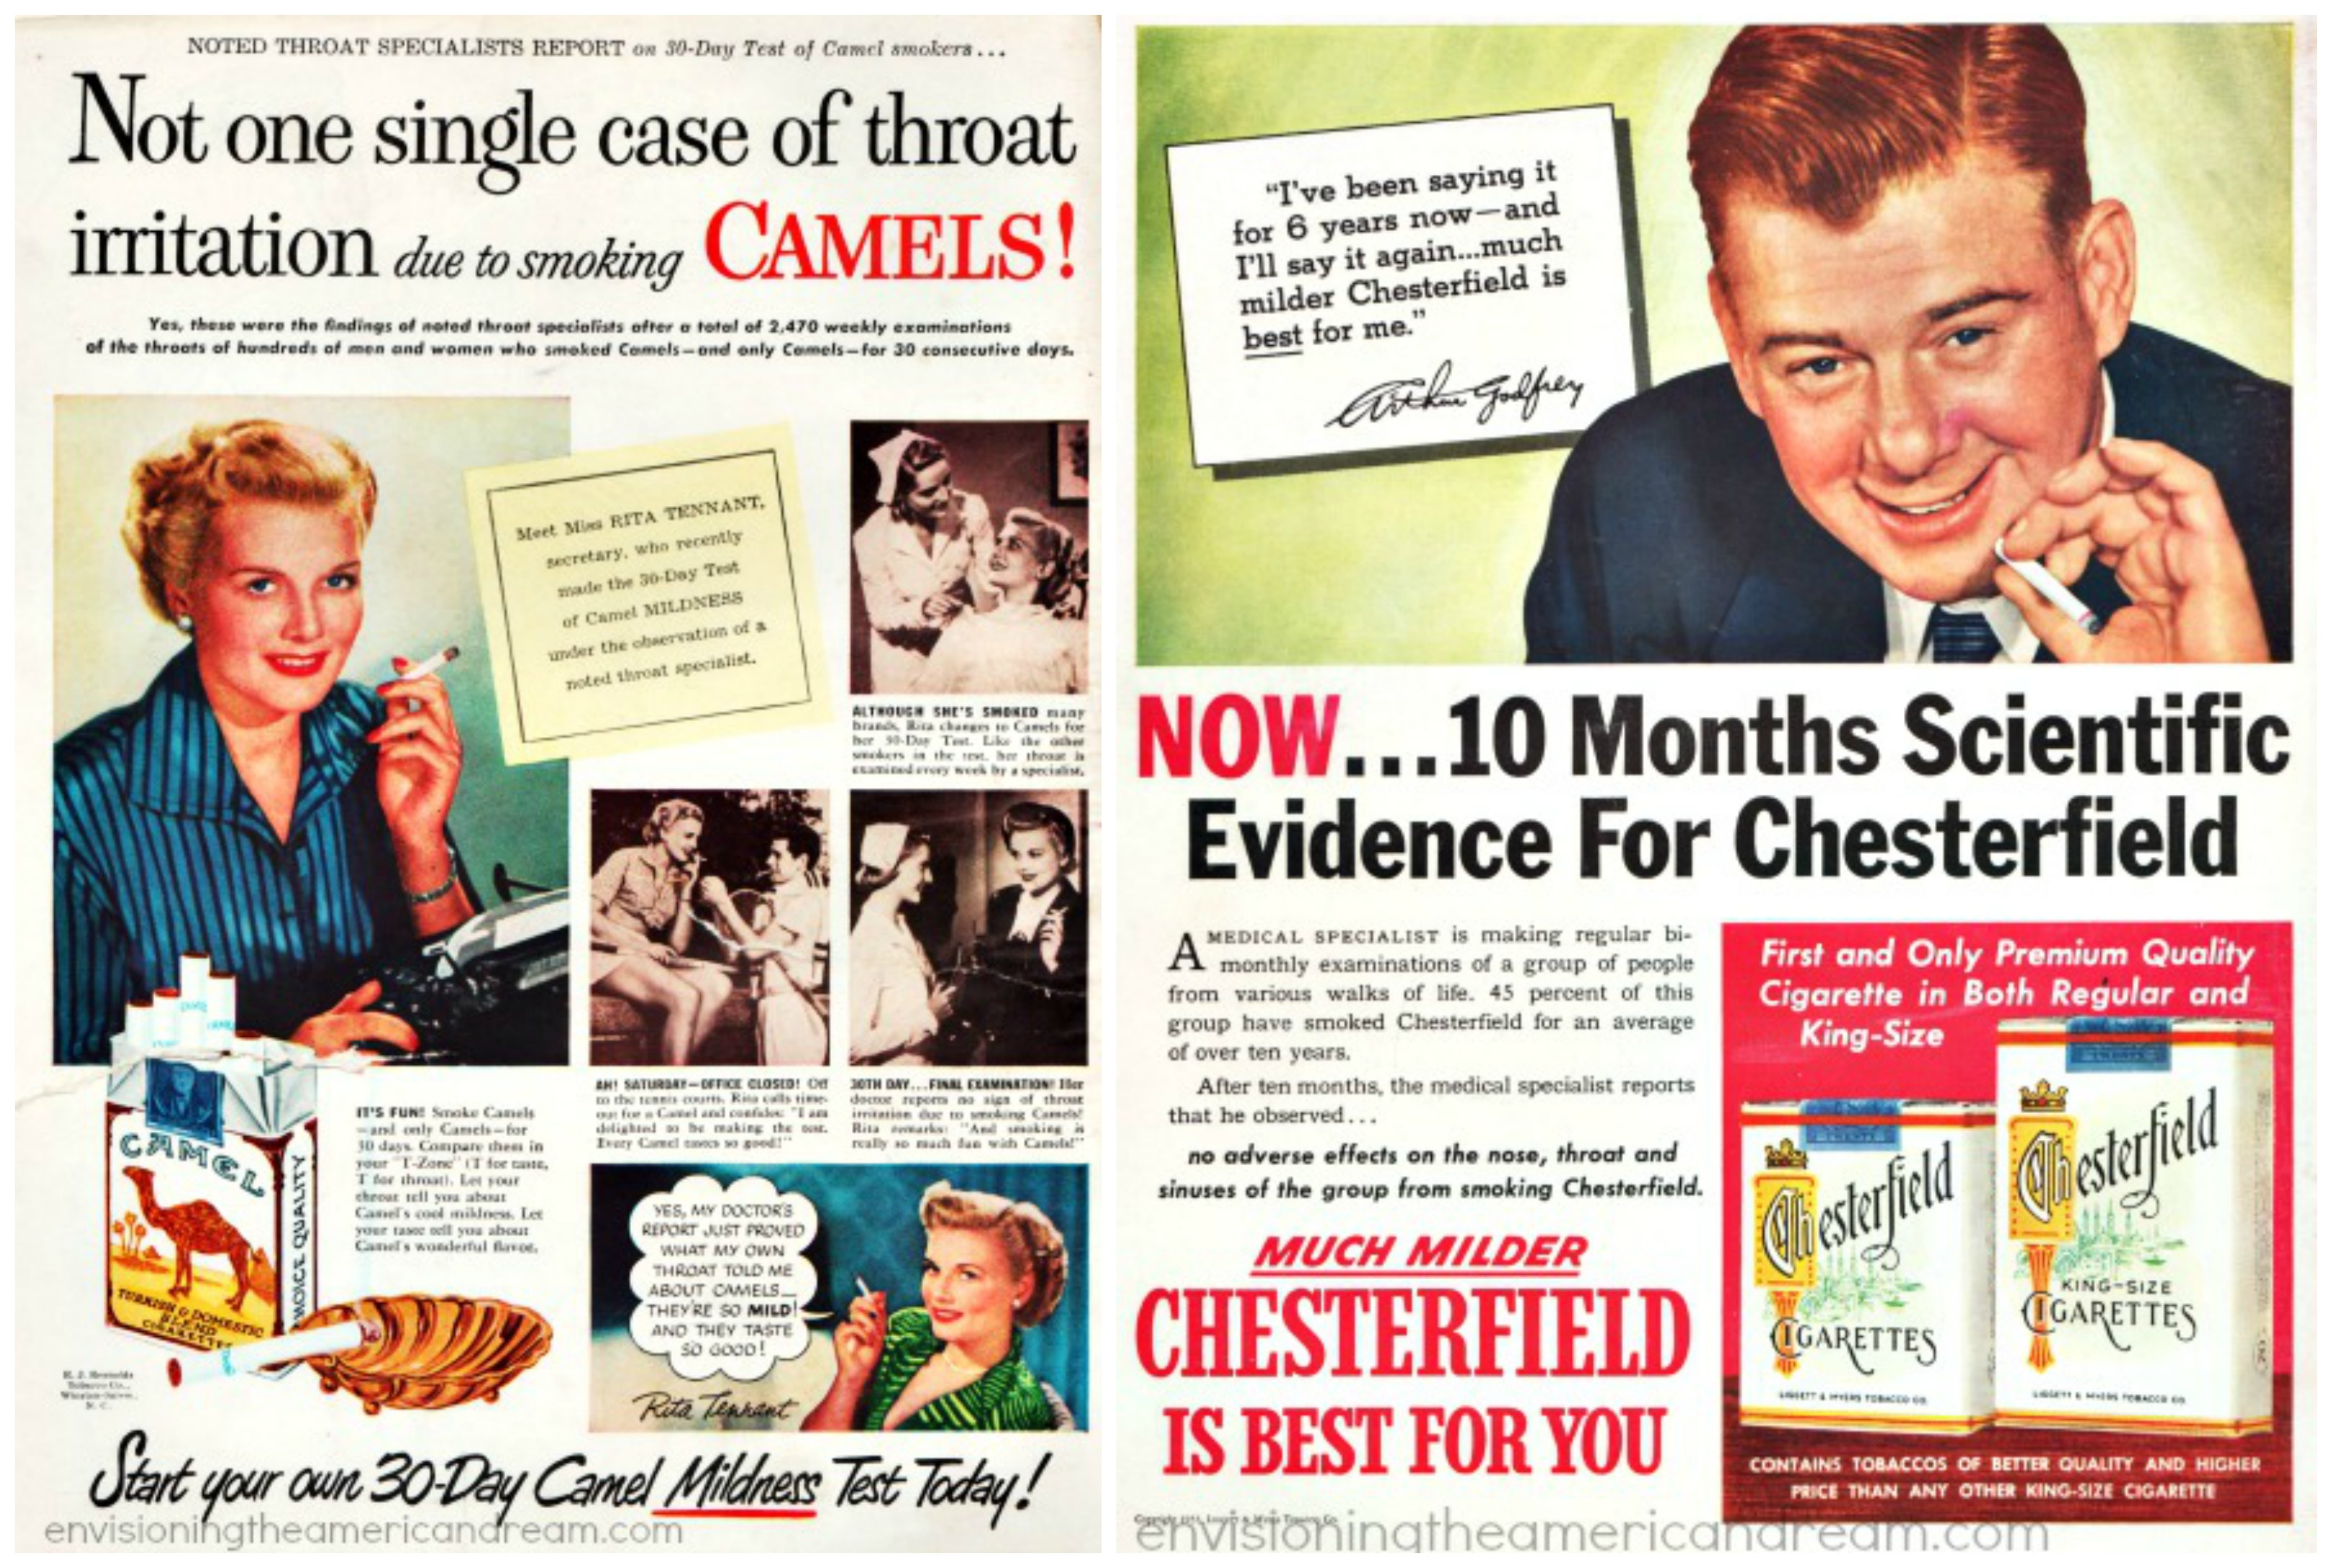 Smoking - not one single case of throat irritation Camels - 10 months Scientific evidence for Chesterfield